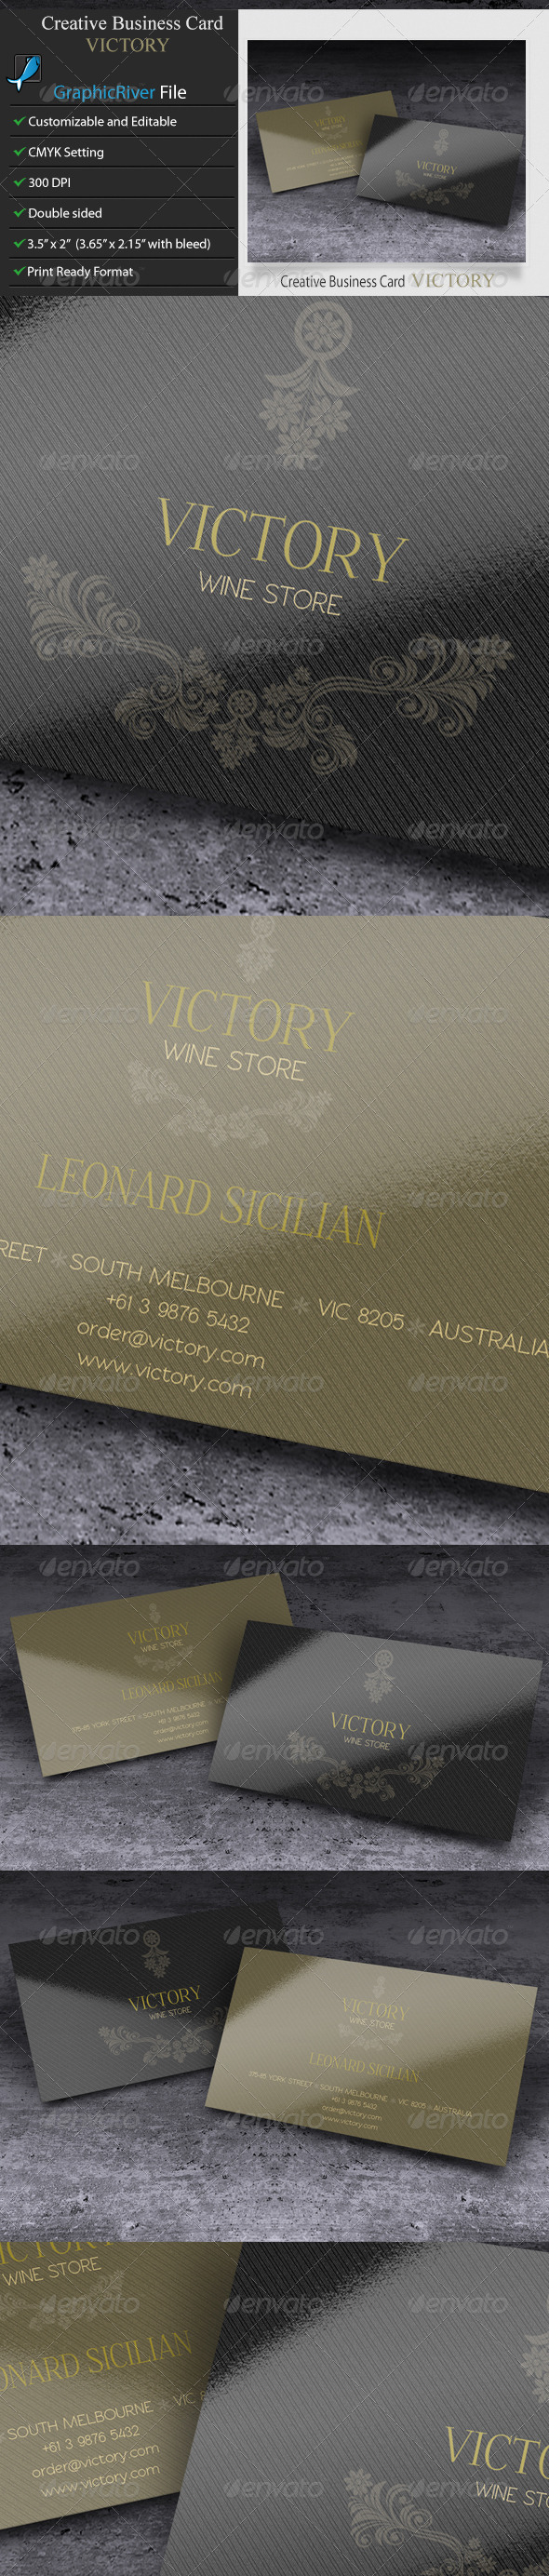 GraphicRiver Creative Business Card Victory 5897233